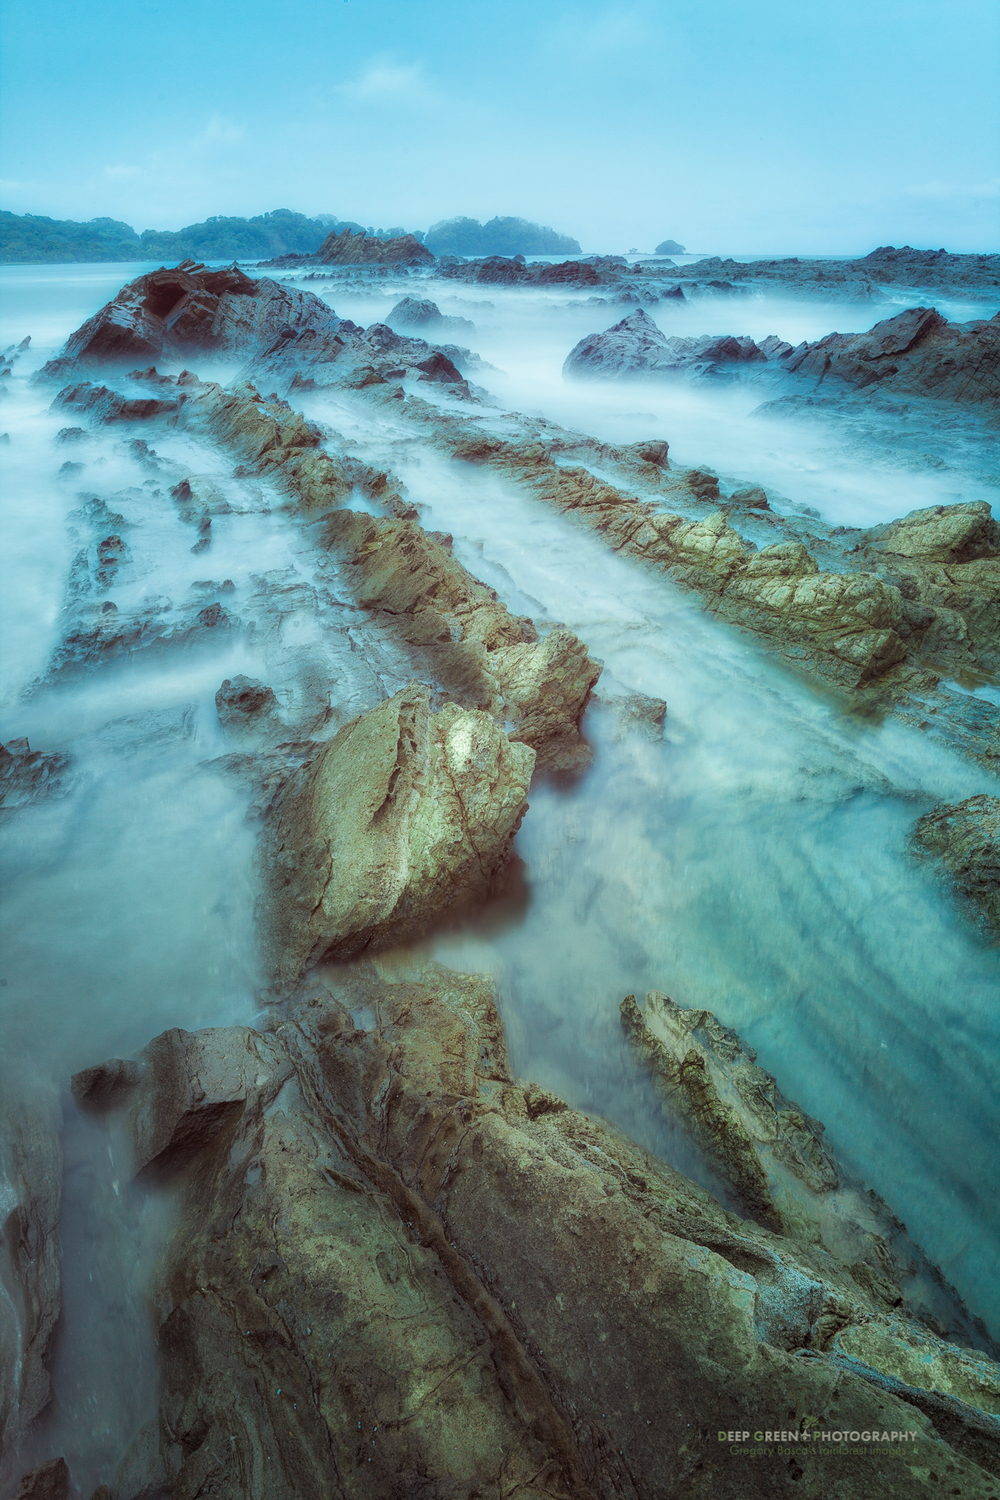 A long exposure on an overcast day at a beach near Dominical